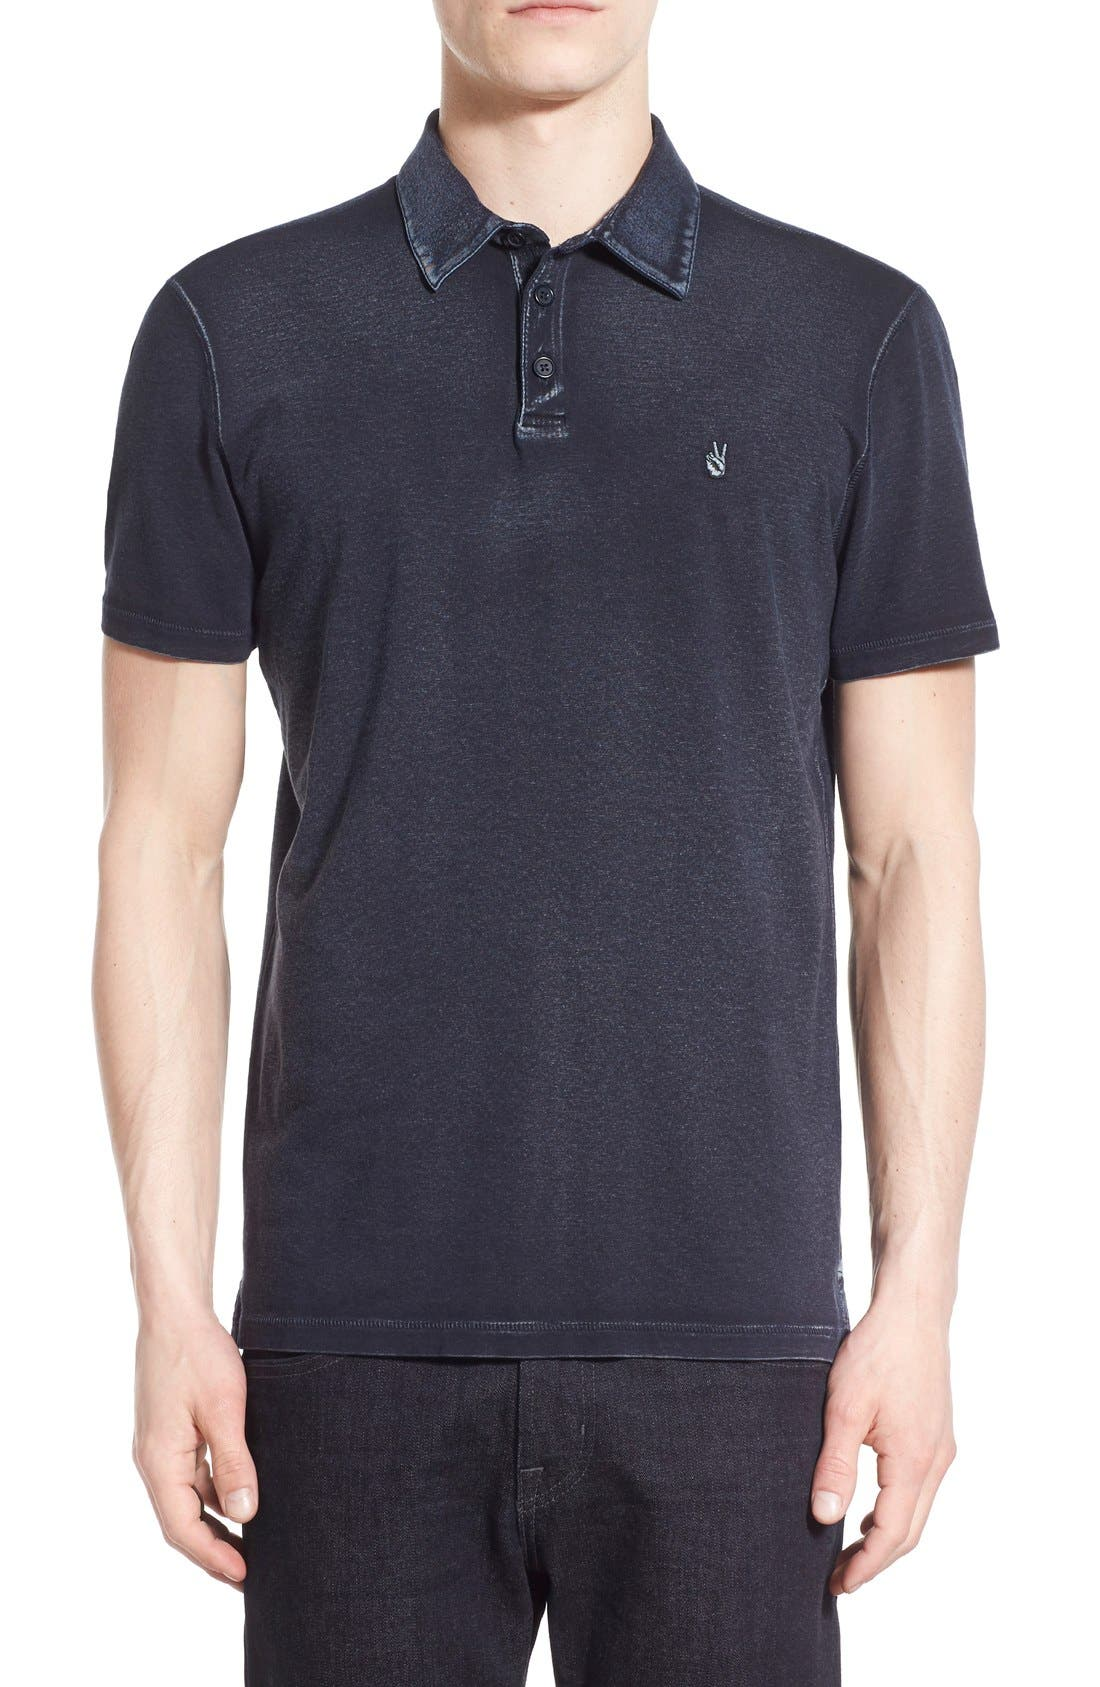 John Varvatos Star USA 'Peace' Slim Fit Polo